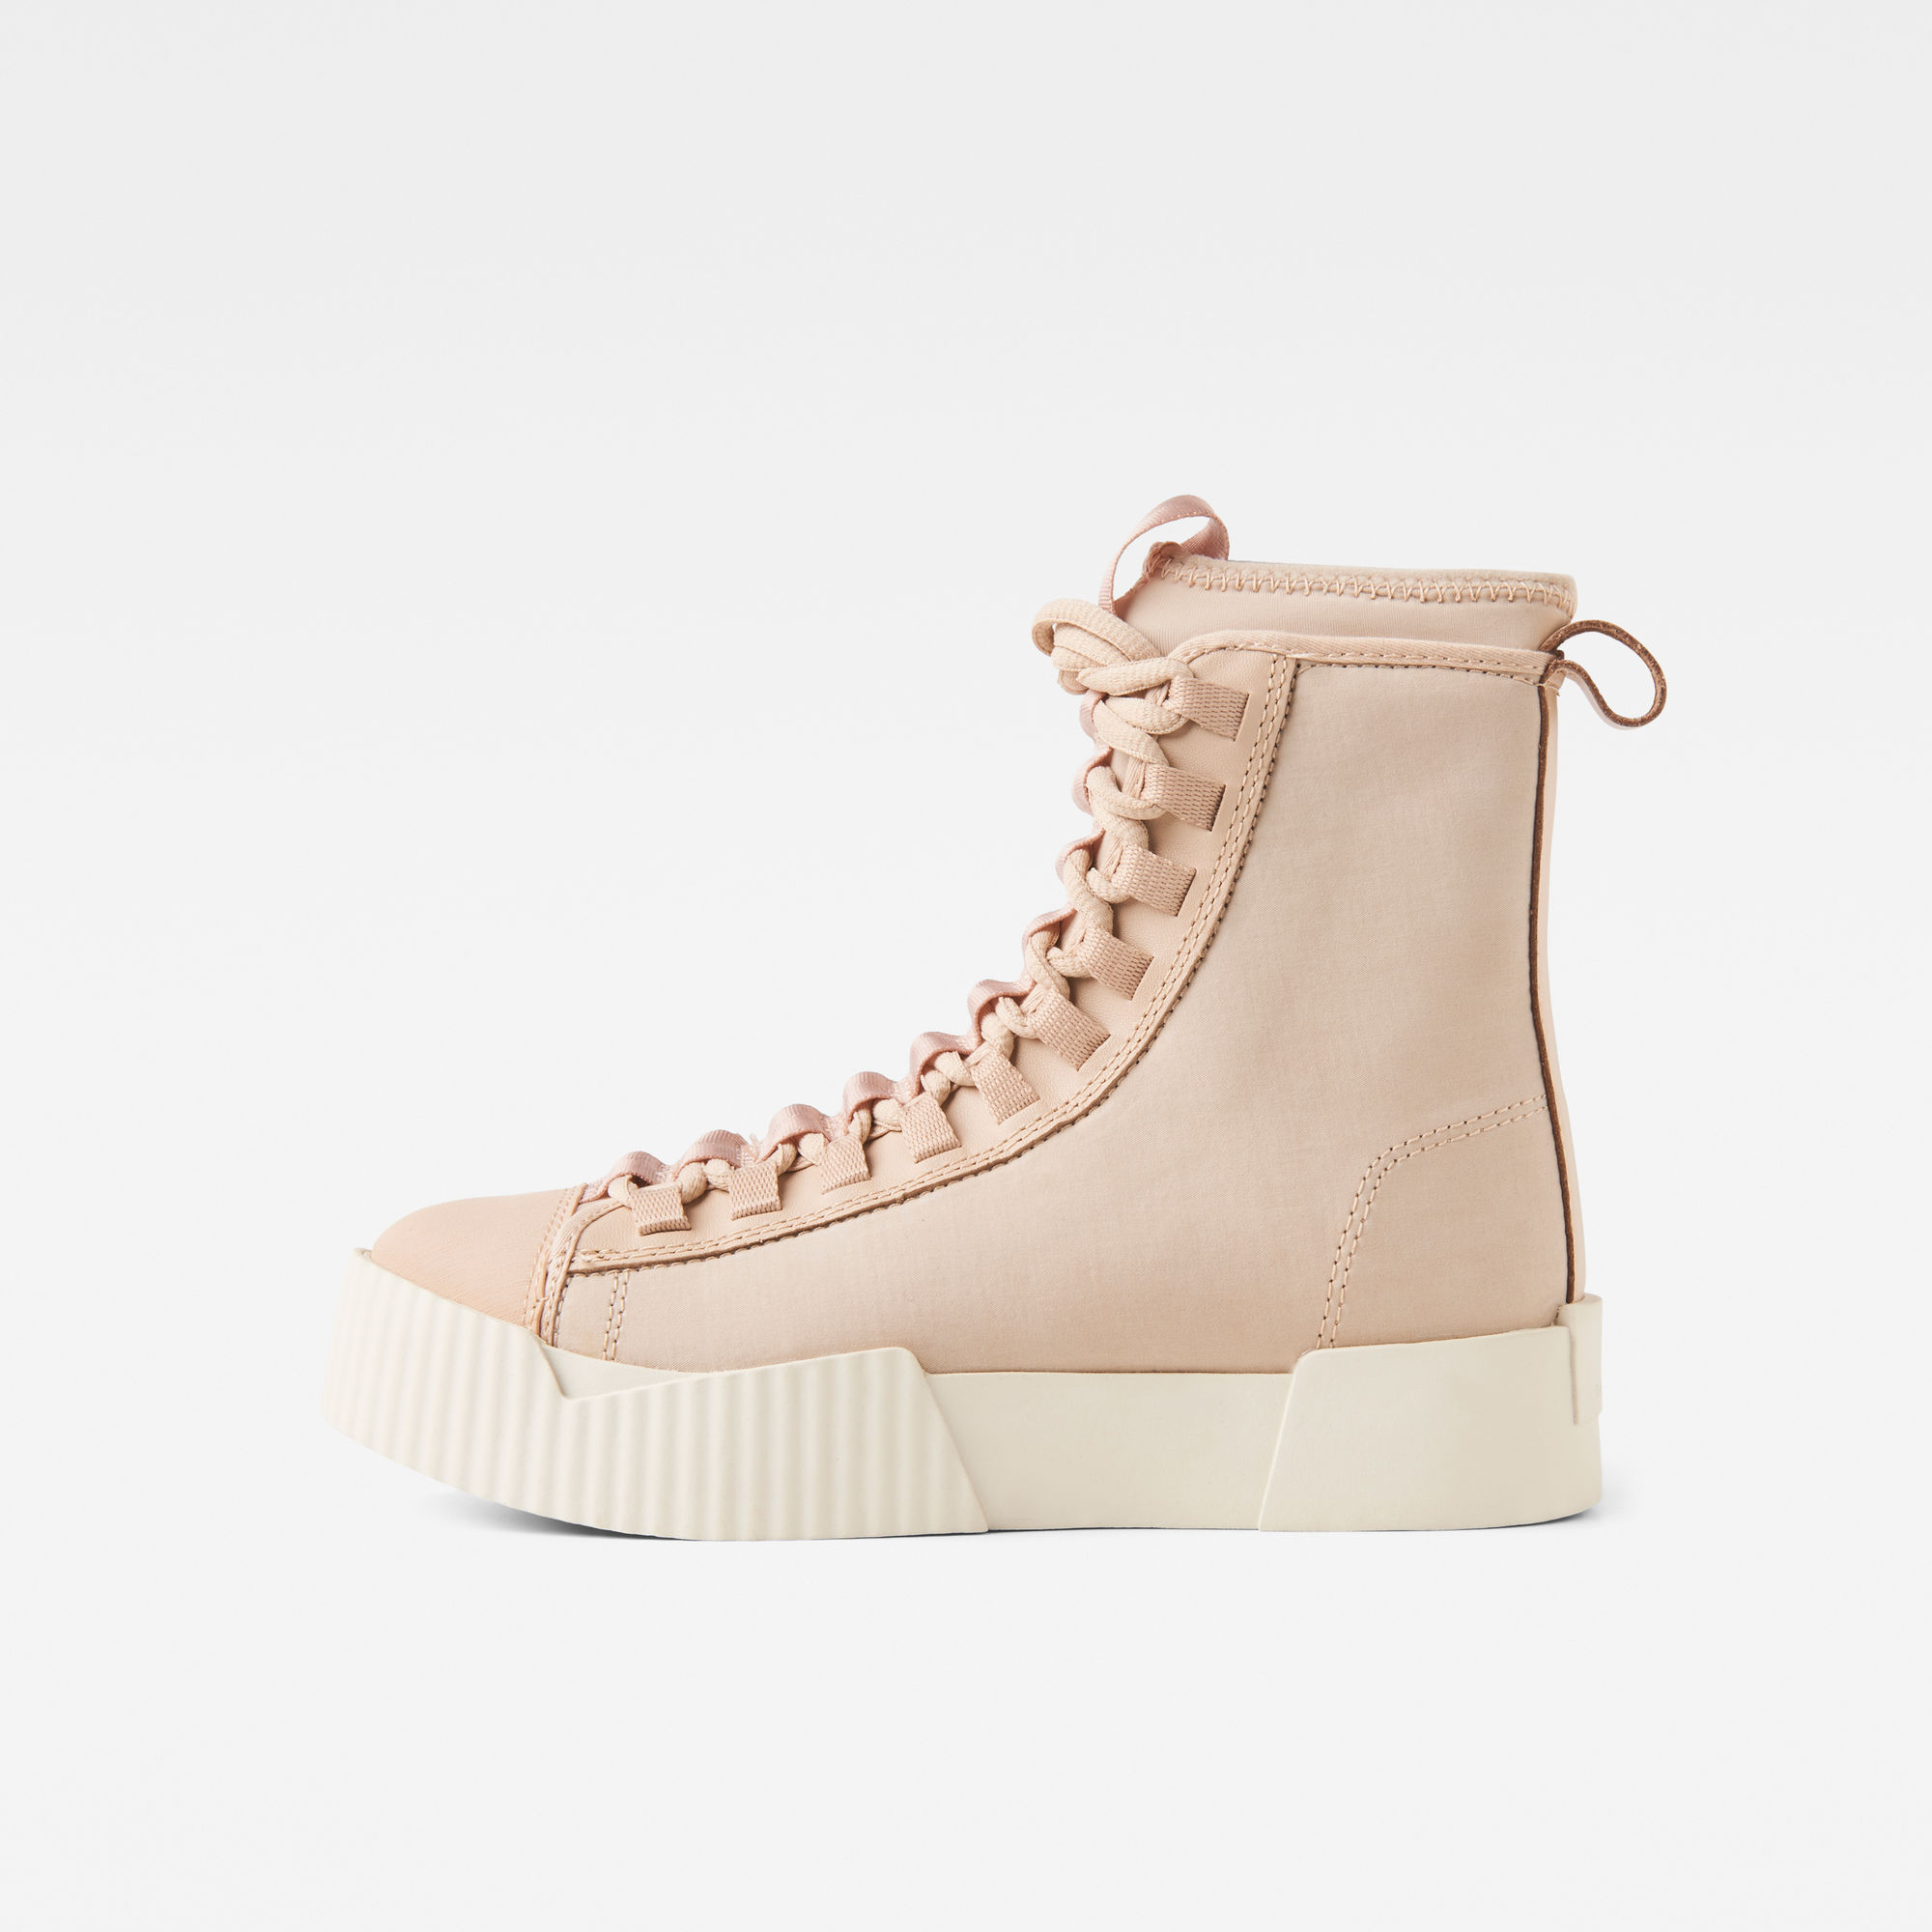 Image of G Star Raw Rackam Scuba High Sneakers